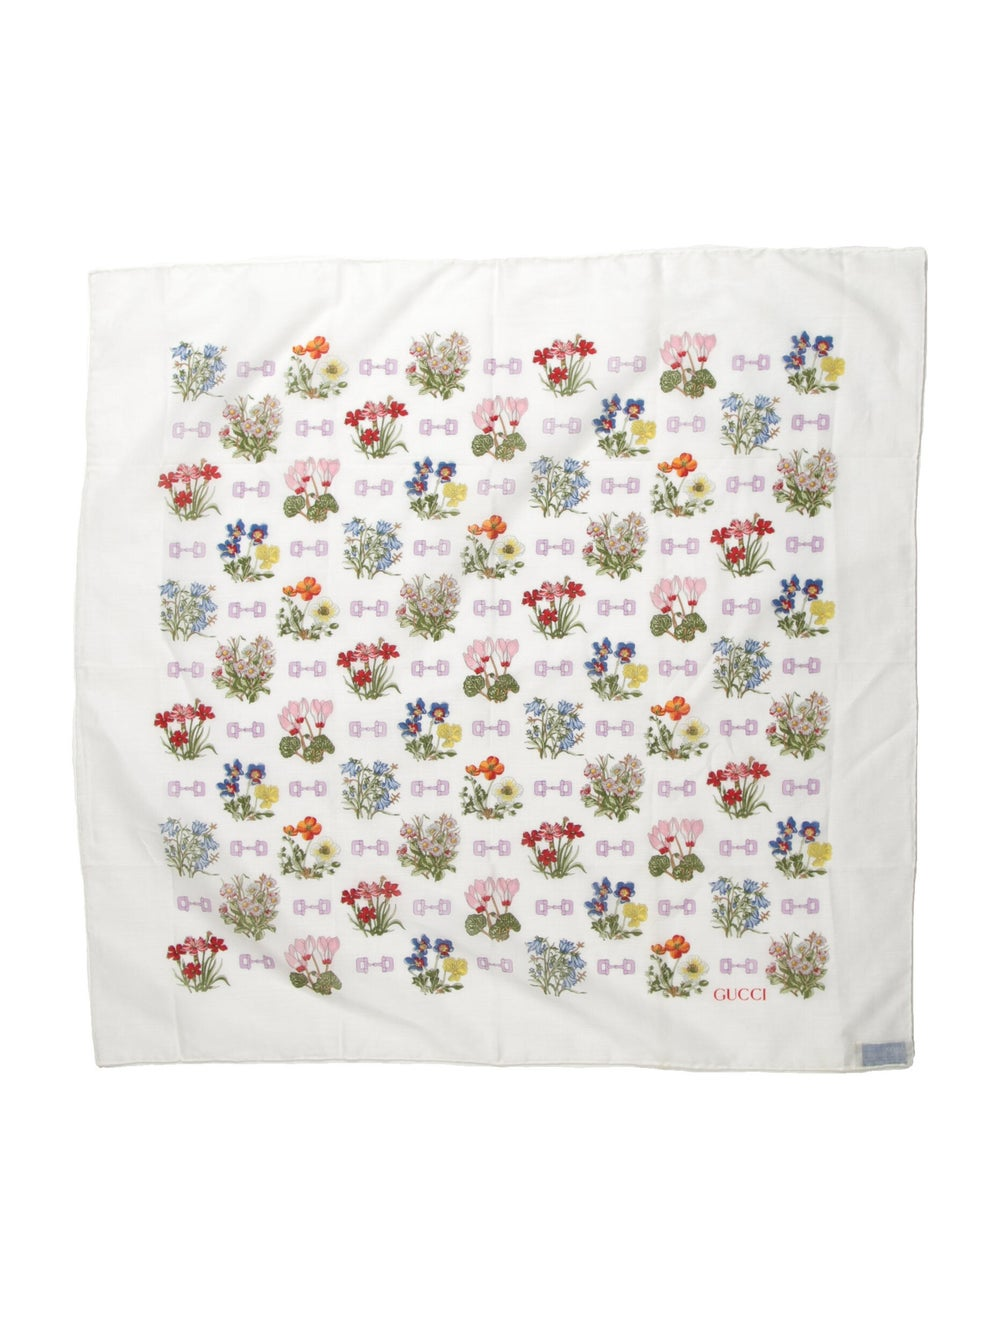 Gucci Floral Print Scarf White - image 1